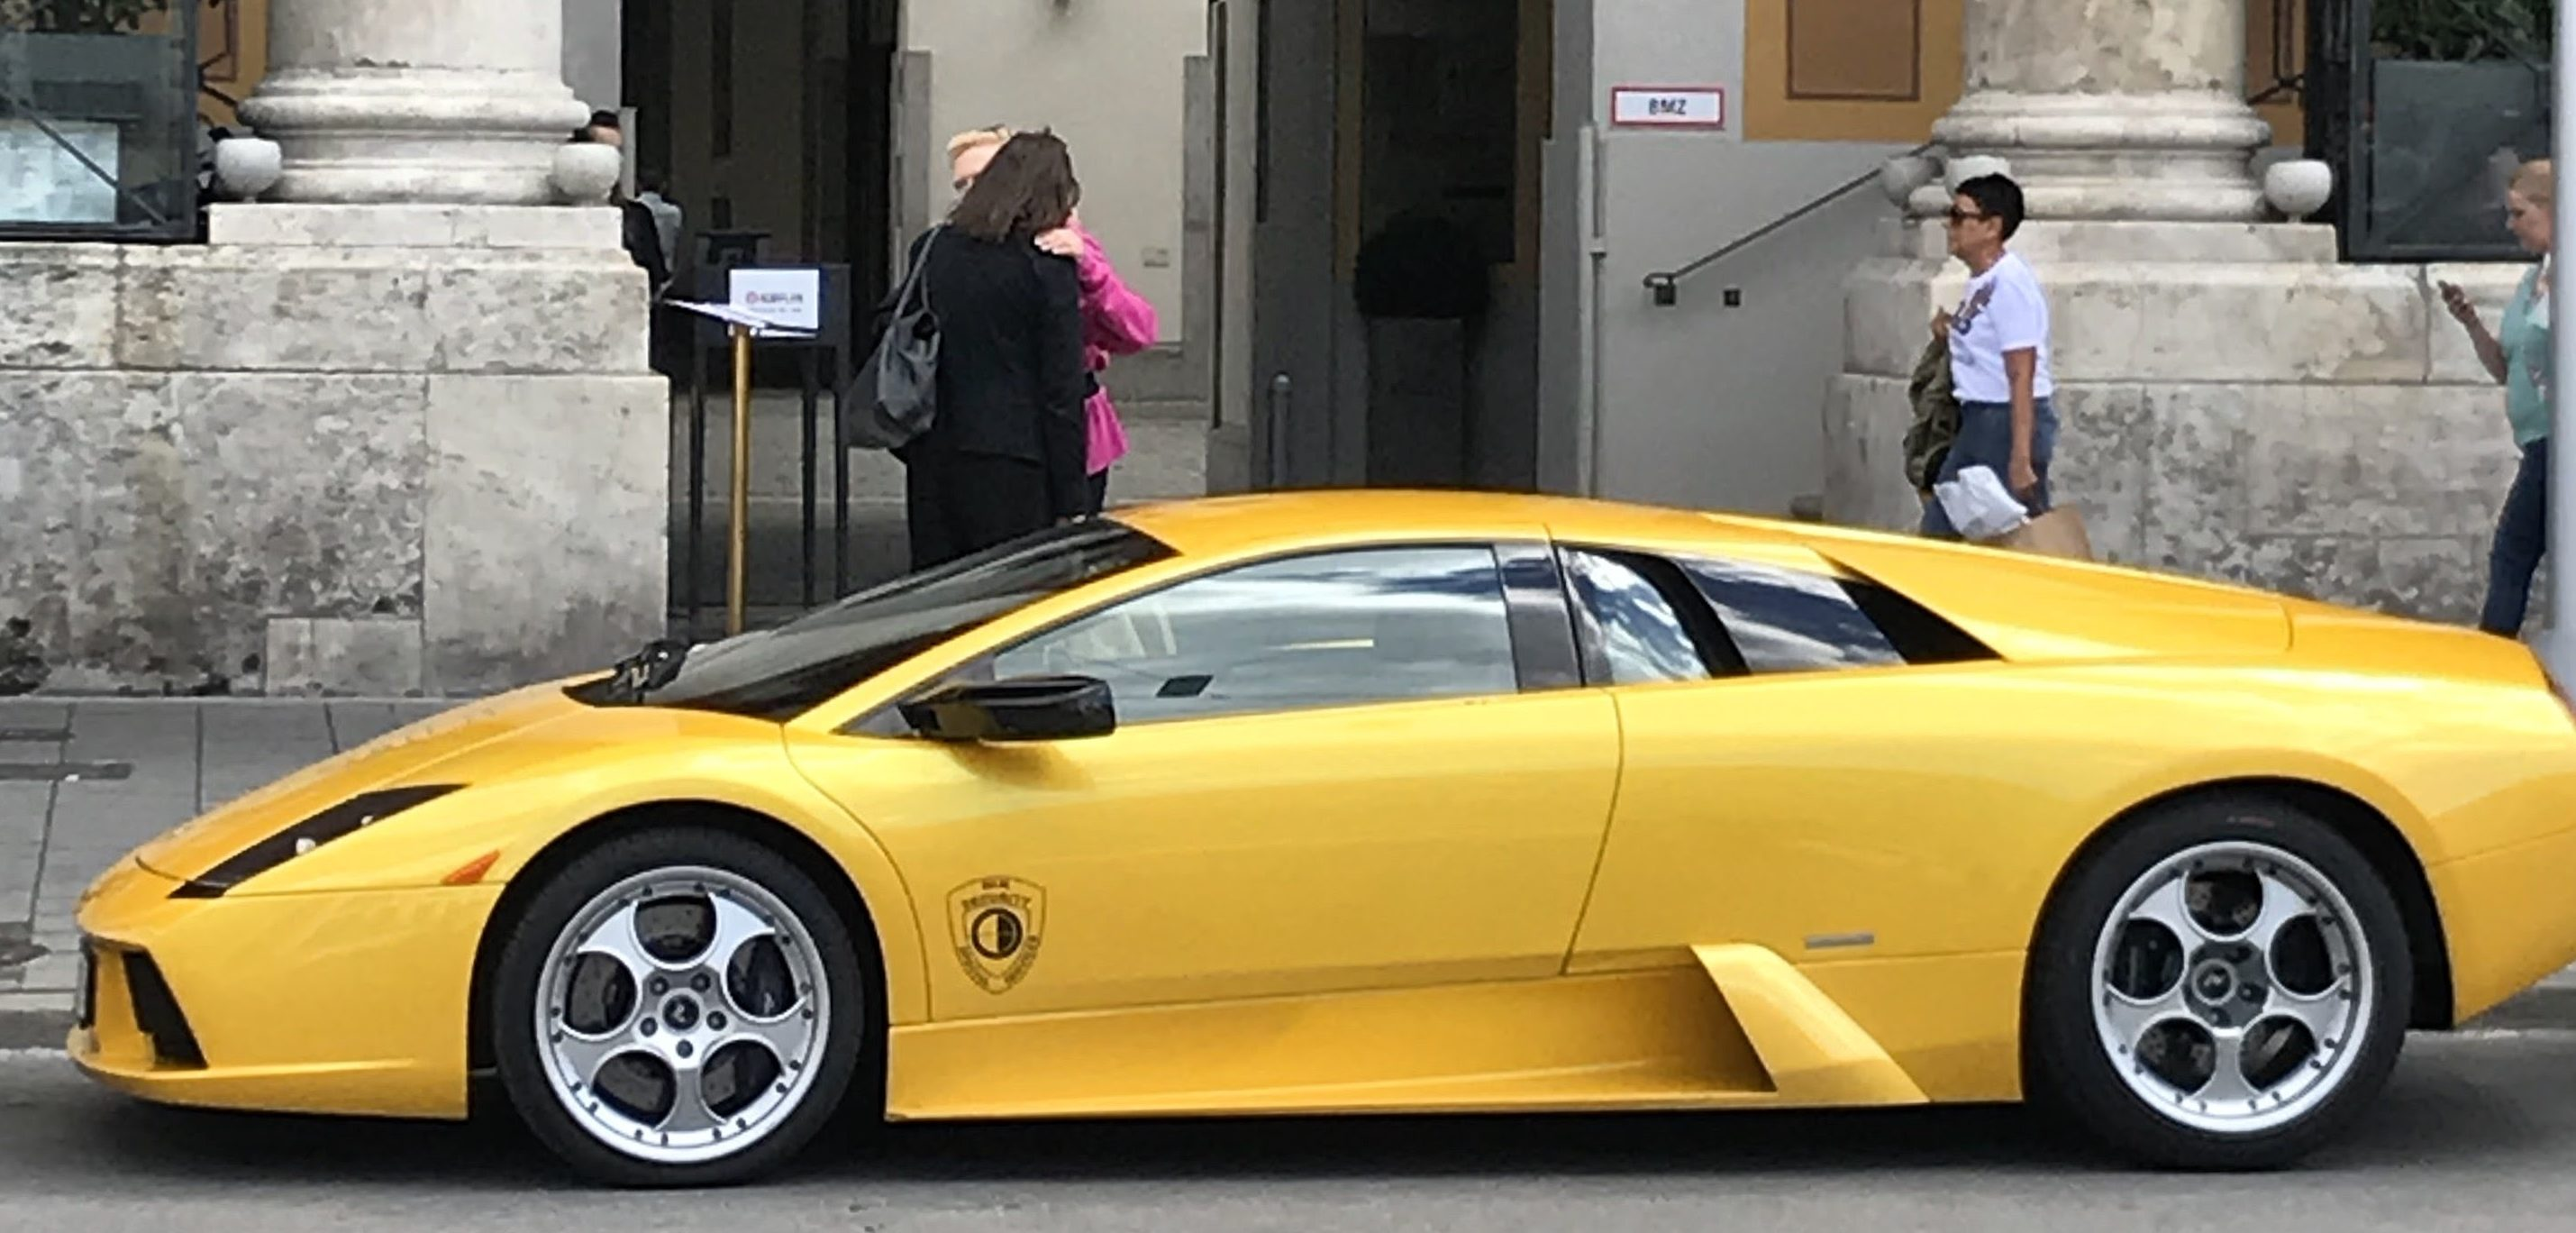 Lamborghini Price List Guide To The Super Cars From Italy Daily